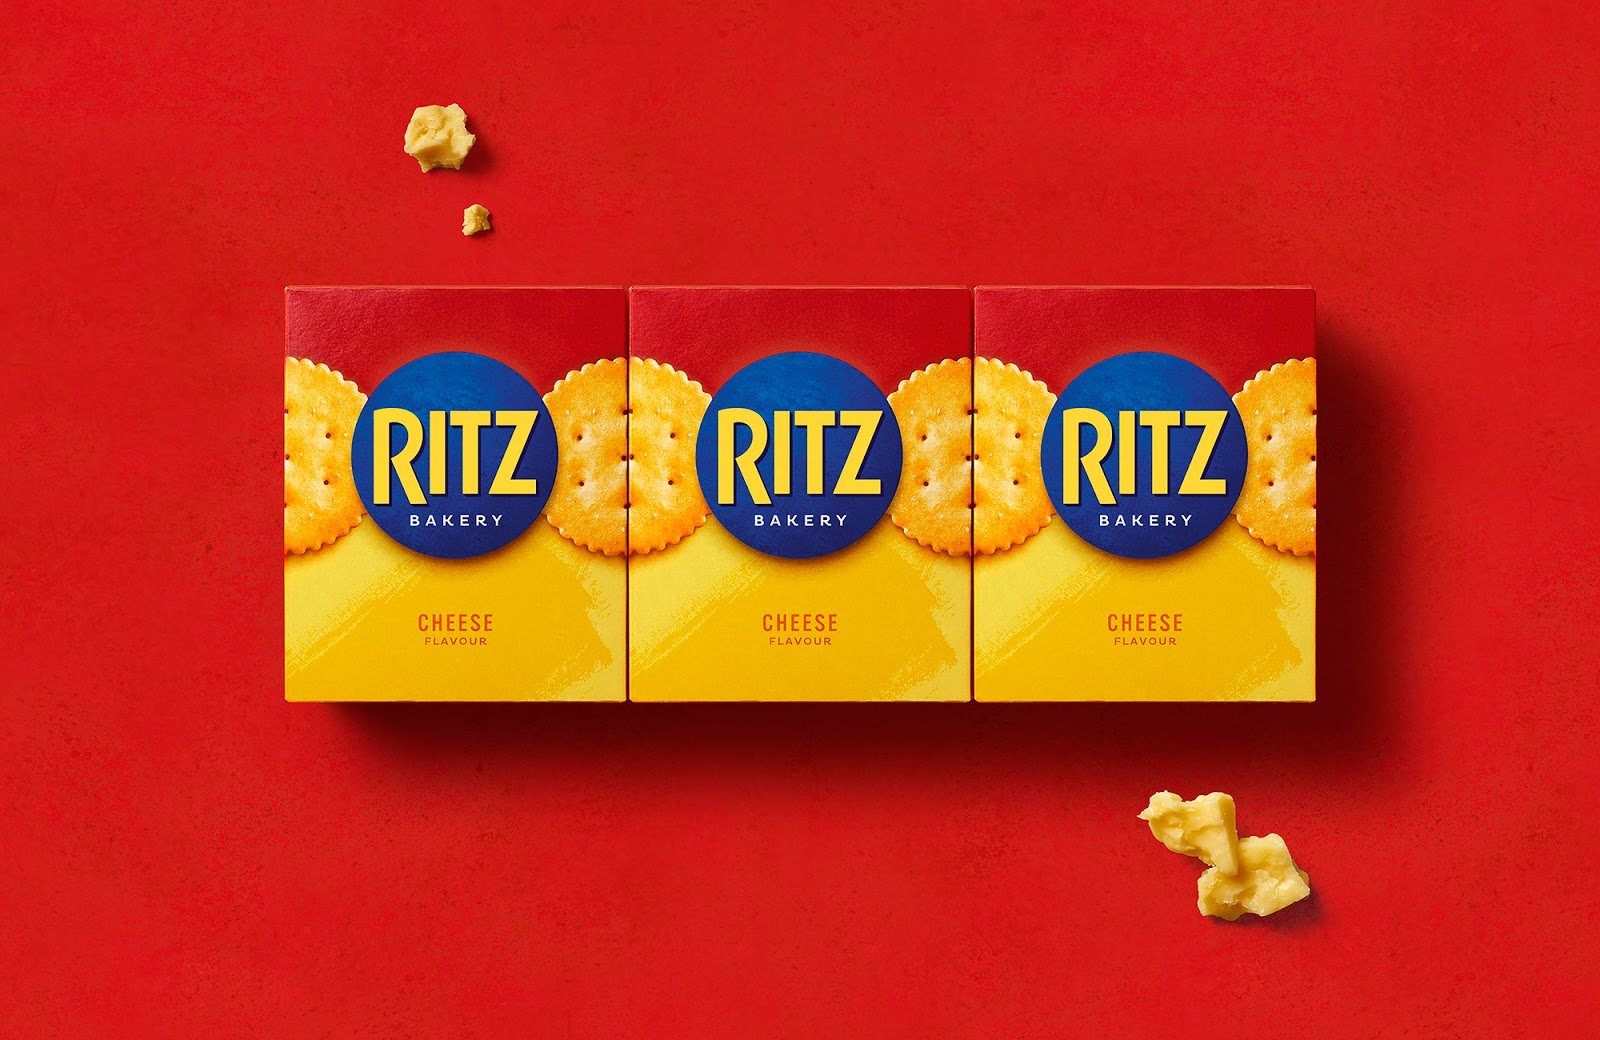 Ritz Cookie Redesign Provides A Homey Touch